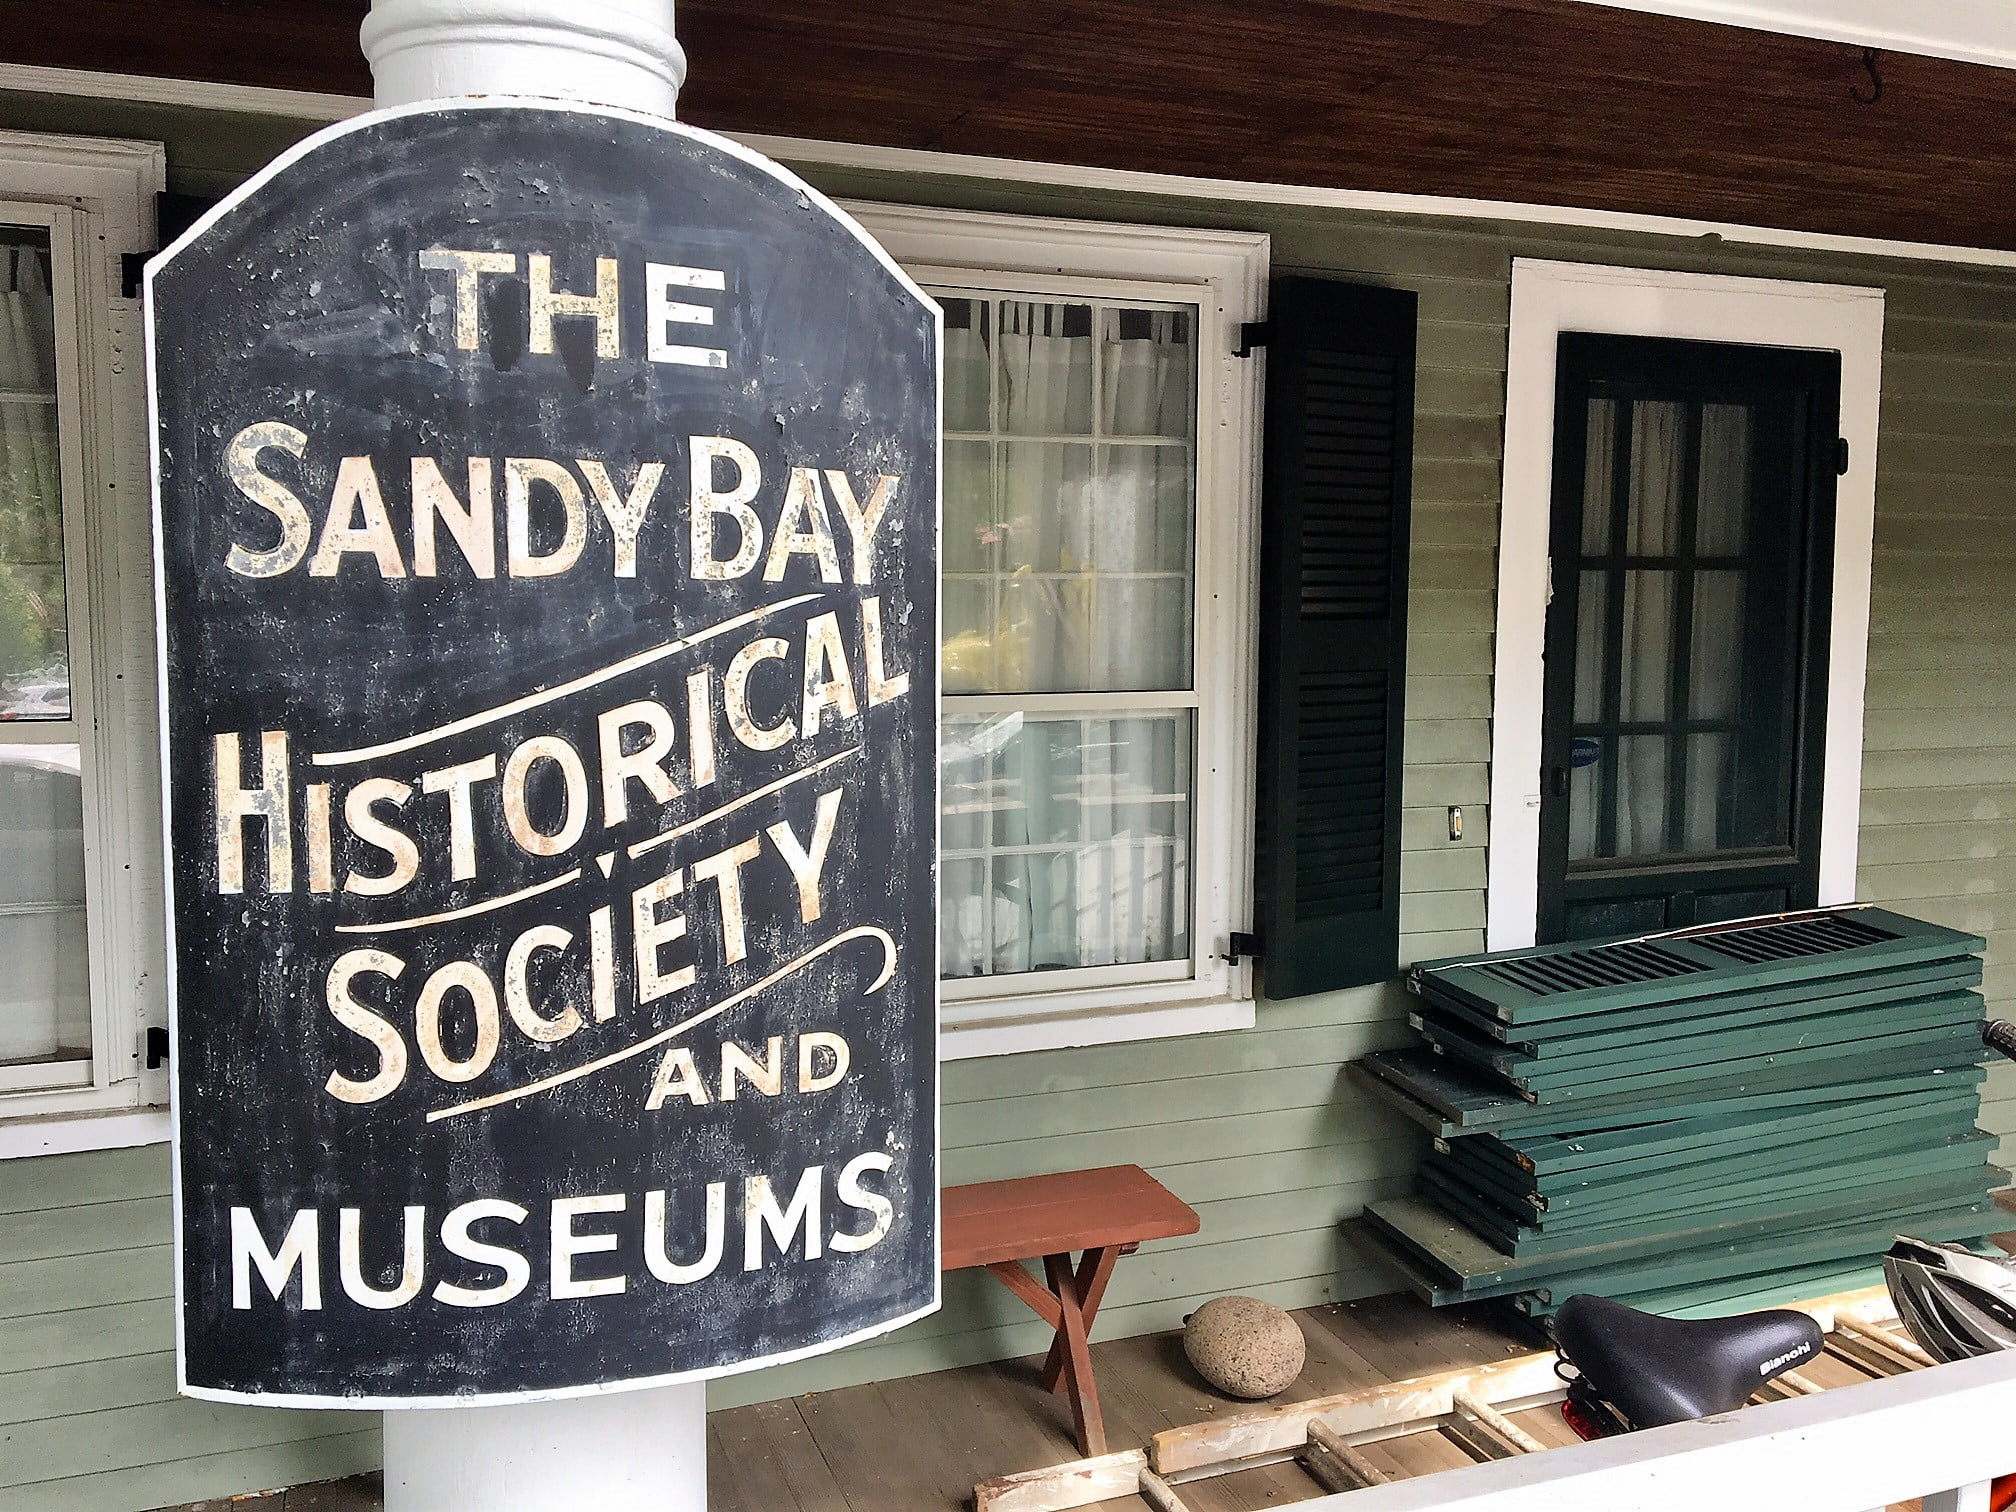 Sandy Bay Historical Society and Museums